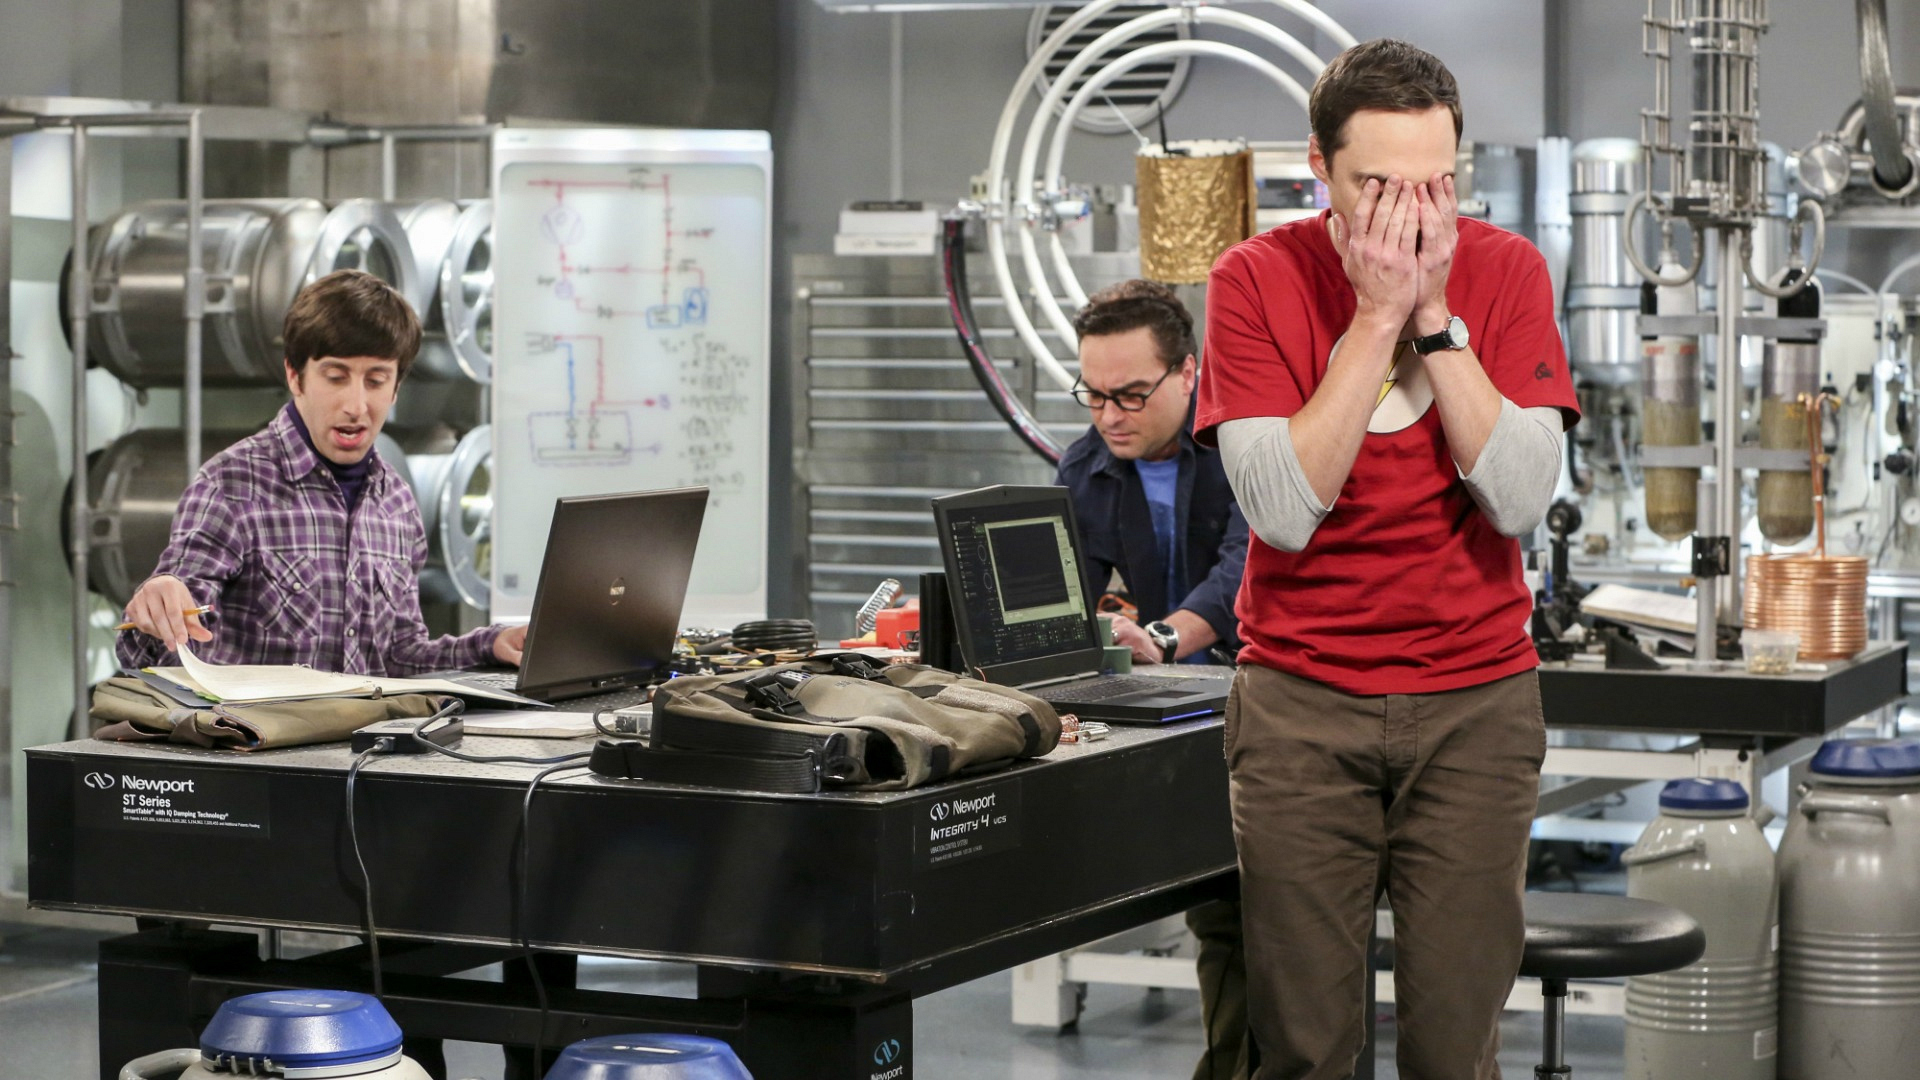 Sheldon covers his face while Howard and Leonard work.